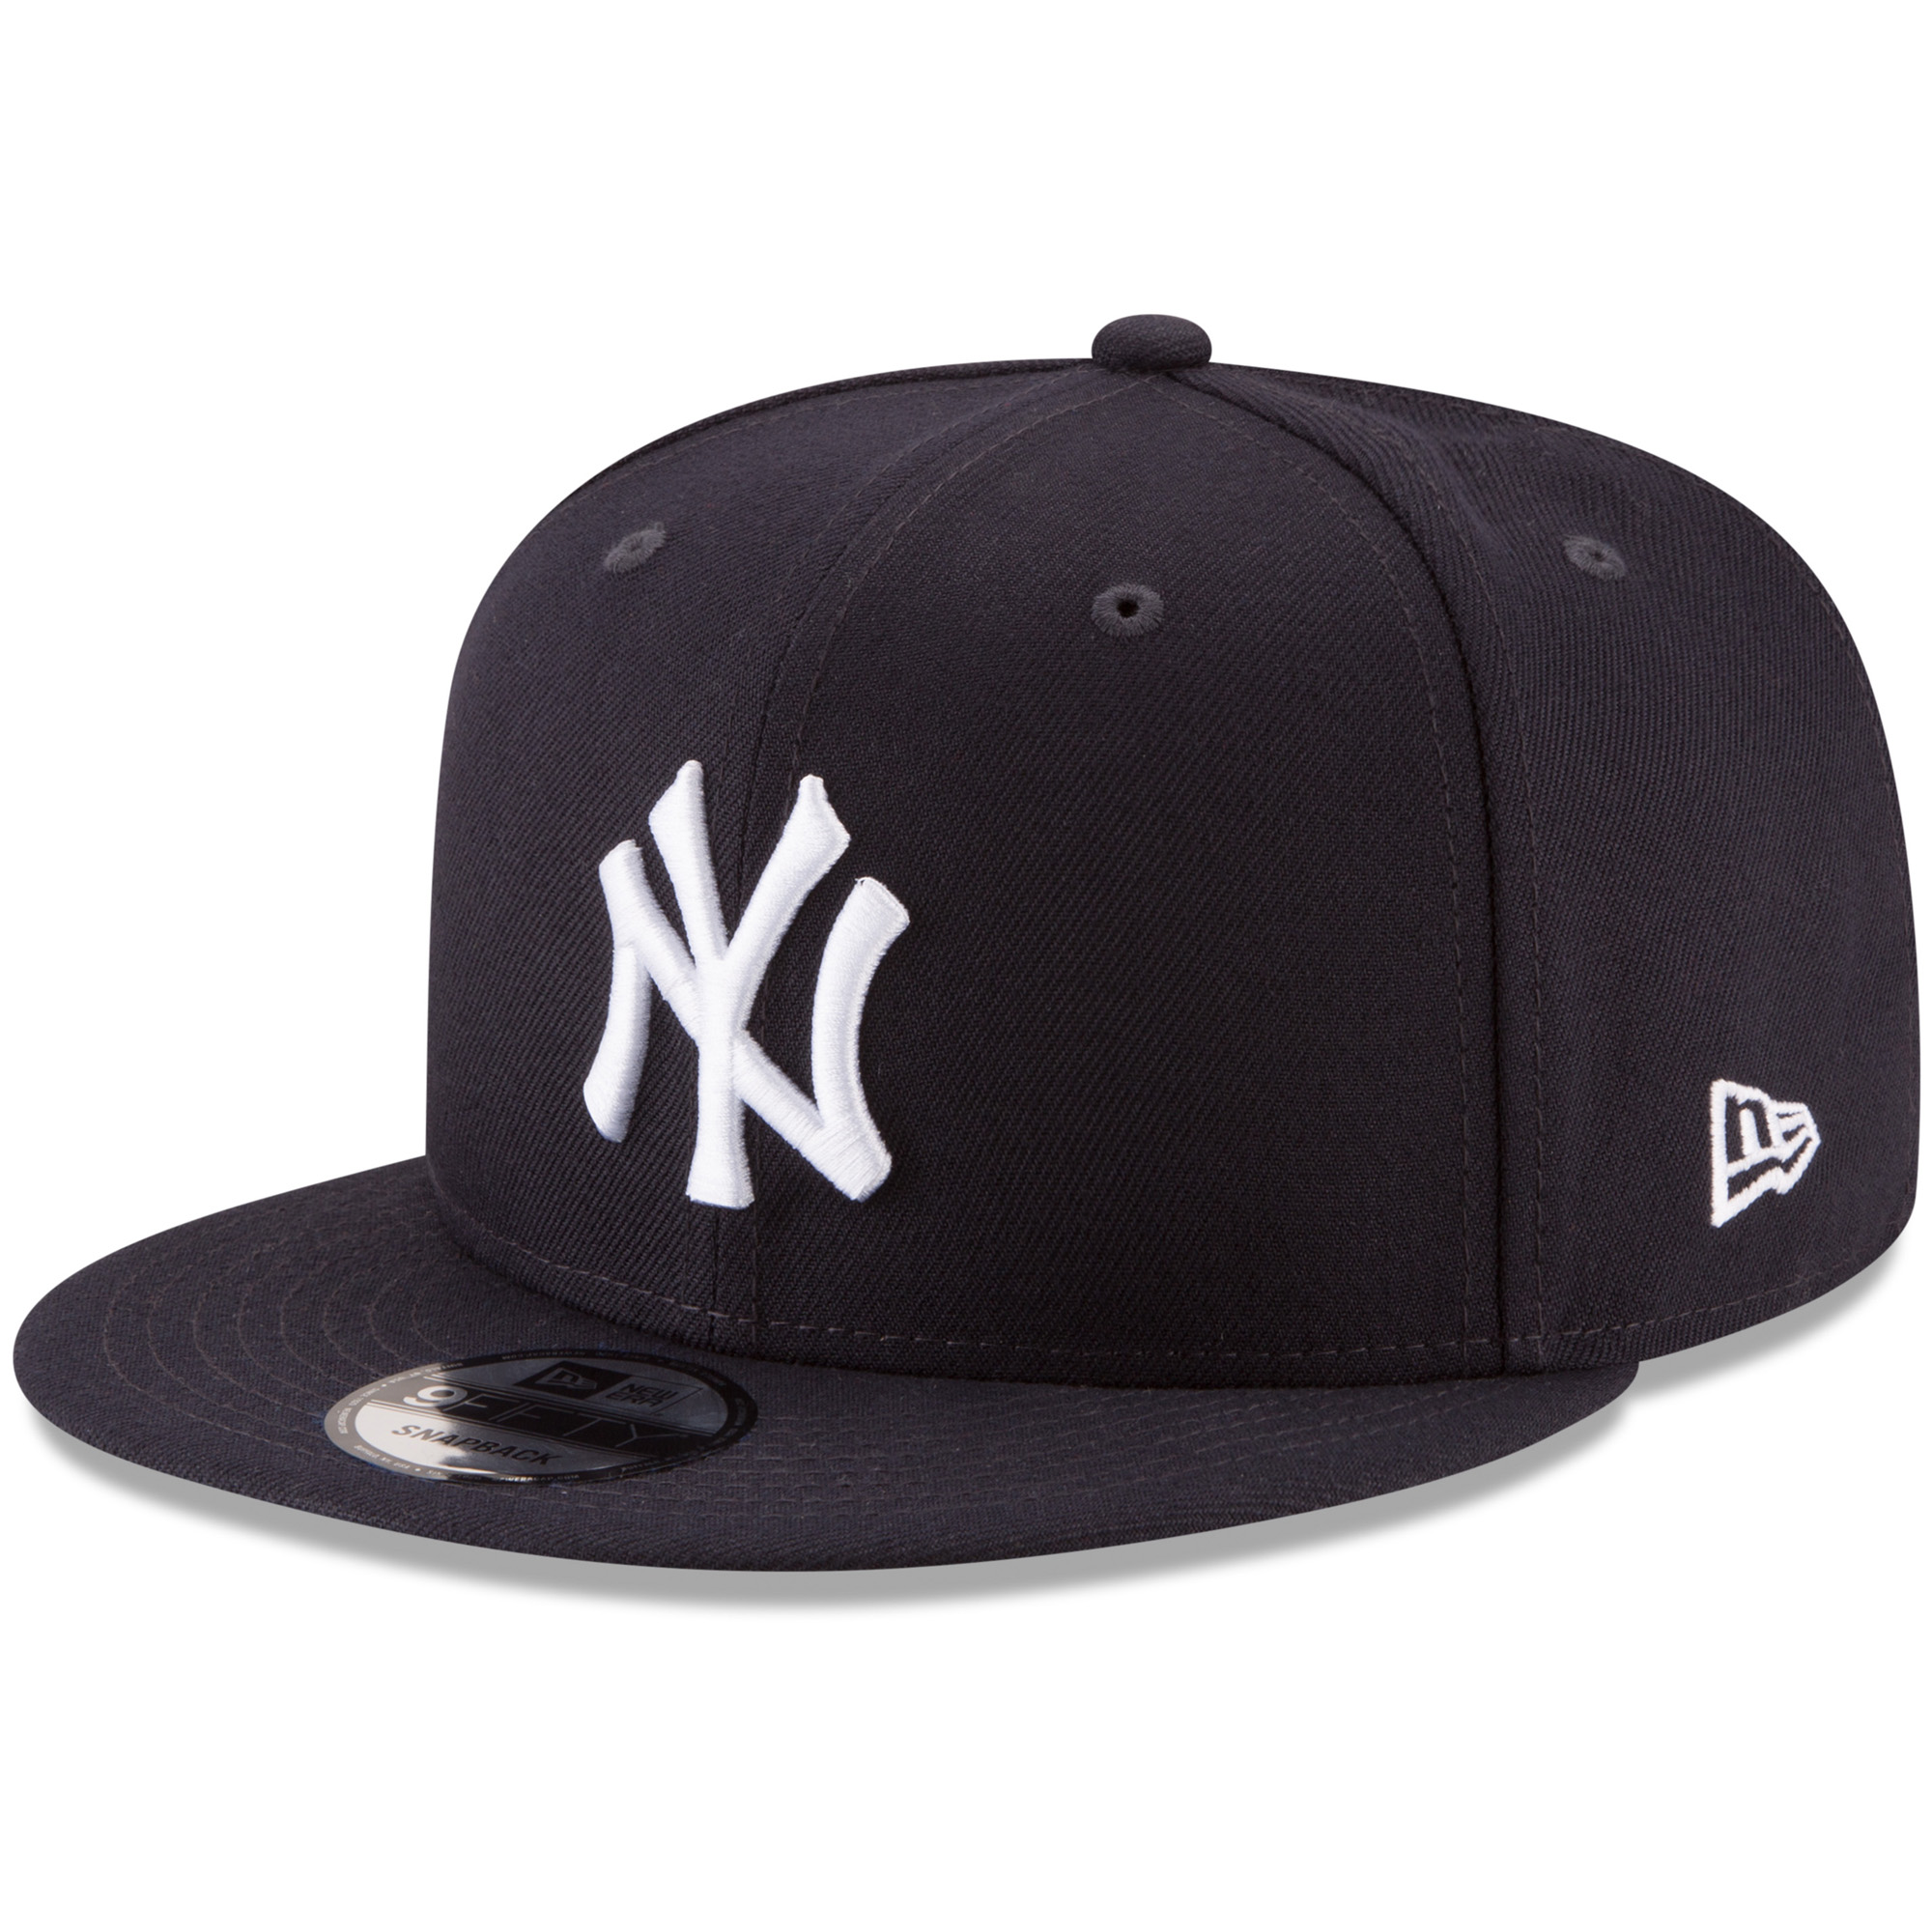 New York Yankees New Era Team Color 9FIFTY Adjustable Hat - Navy - OSFA